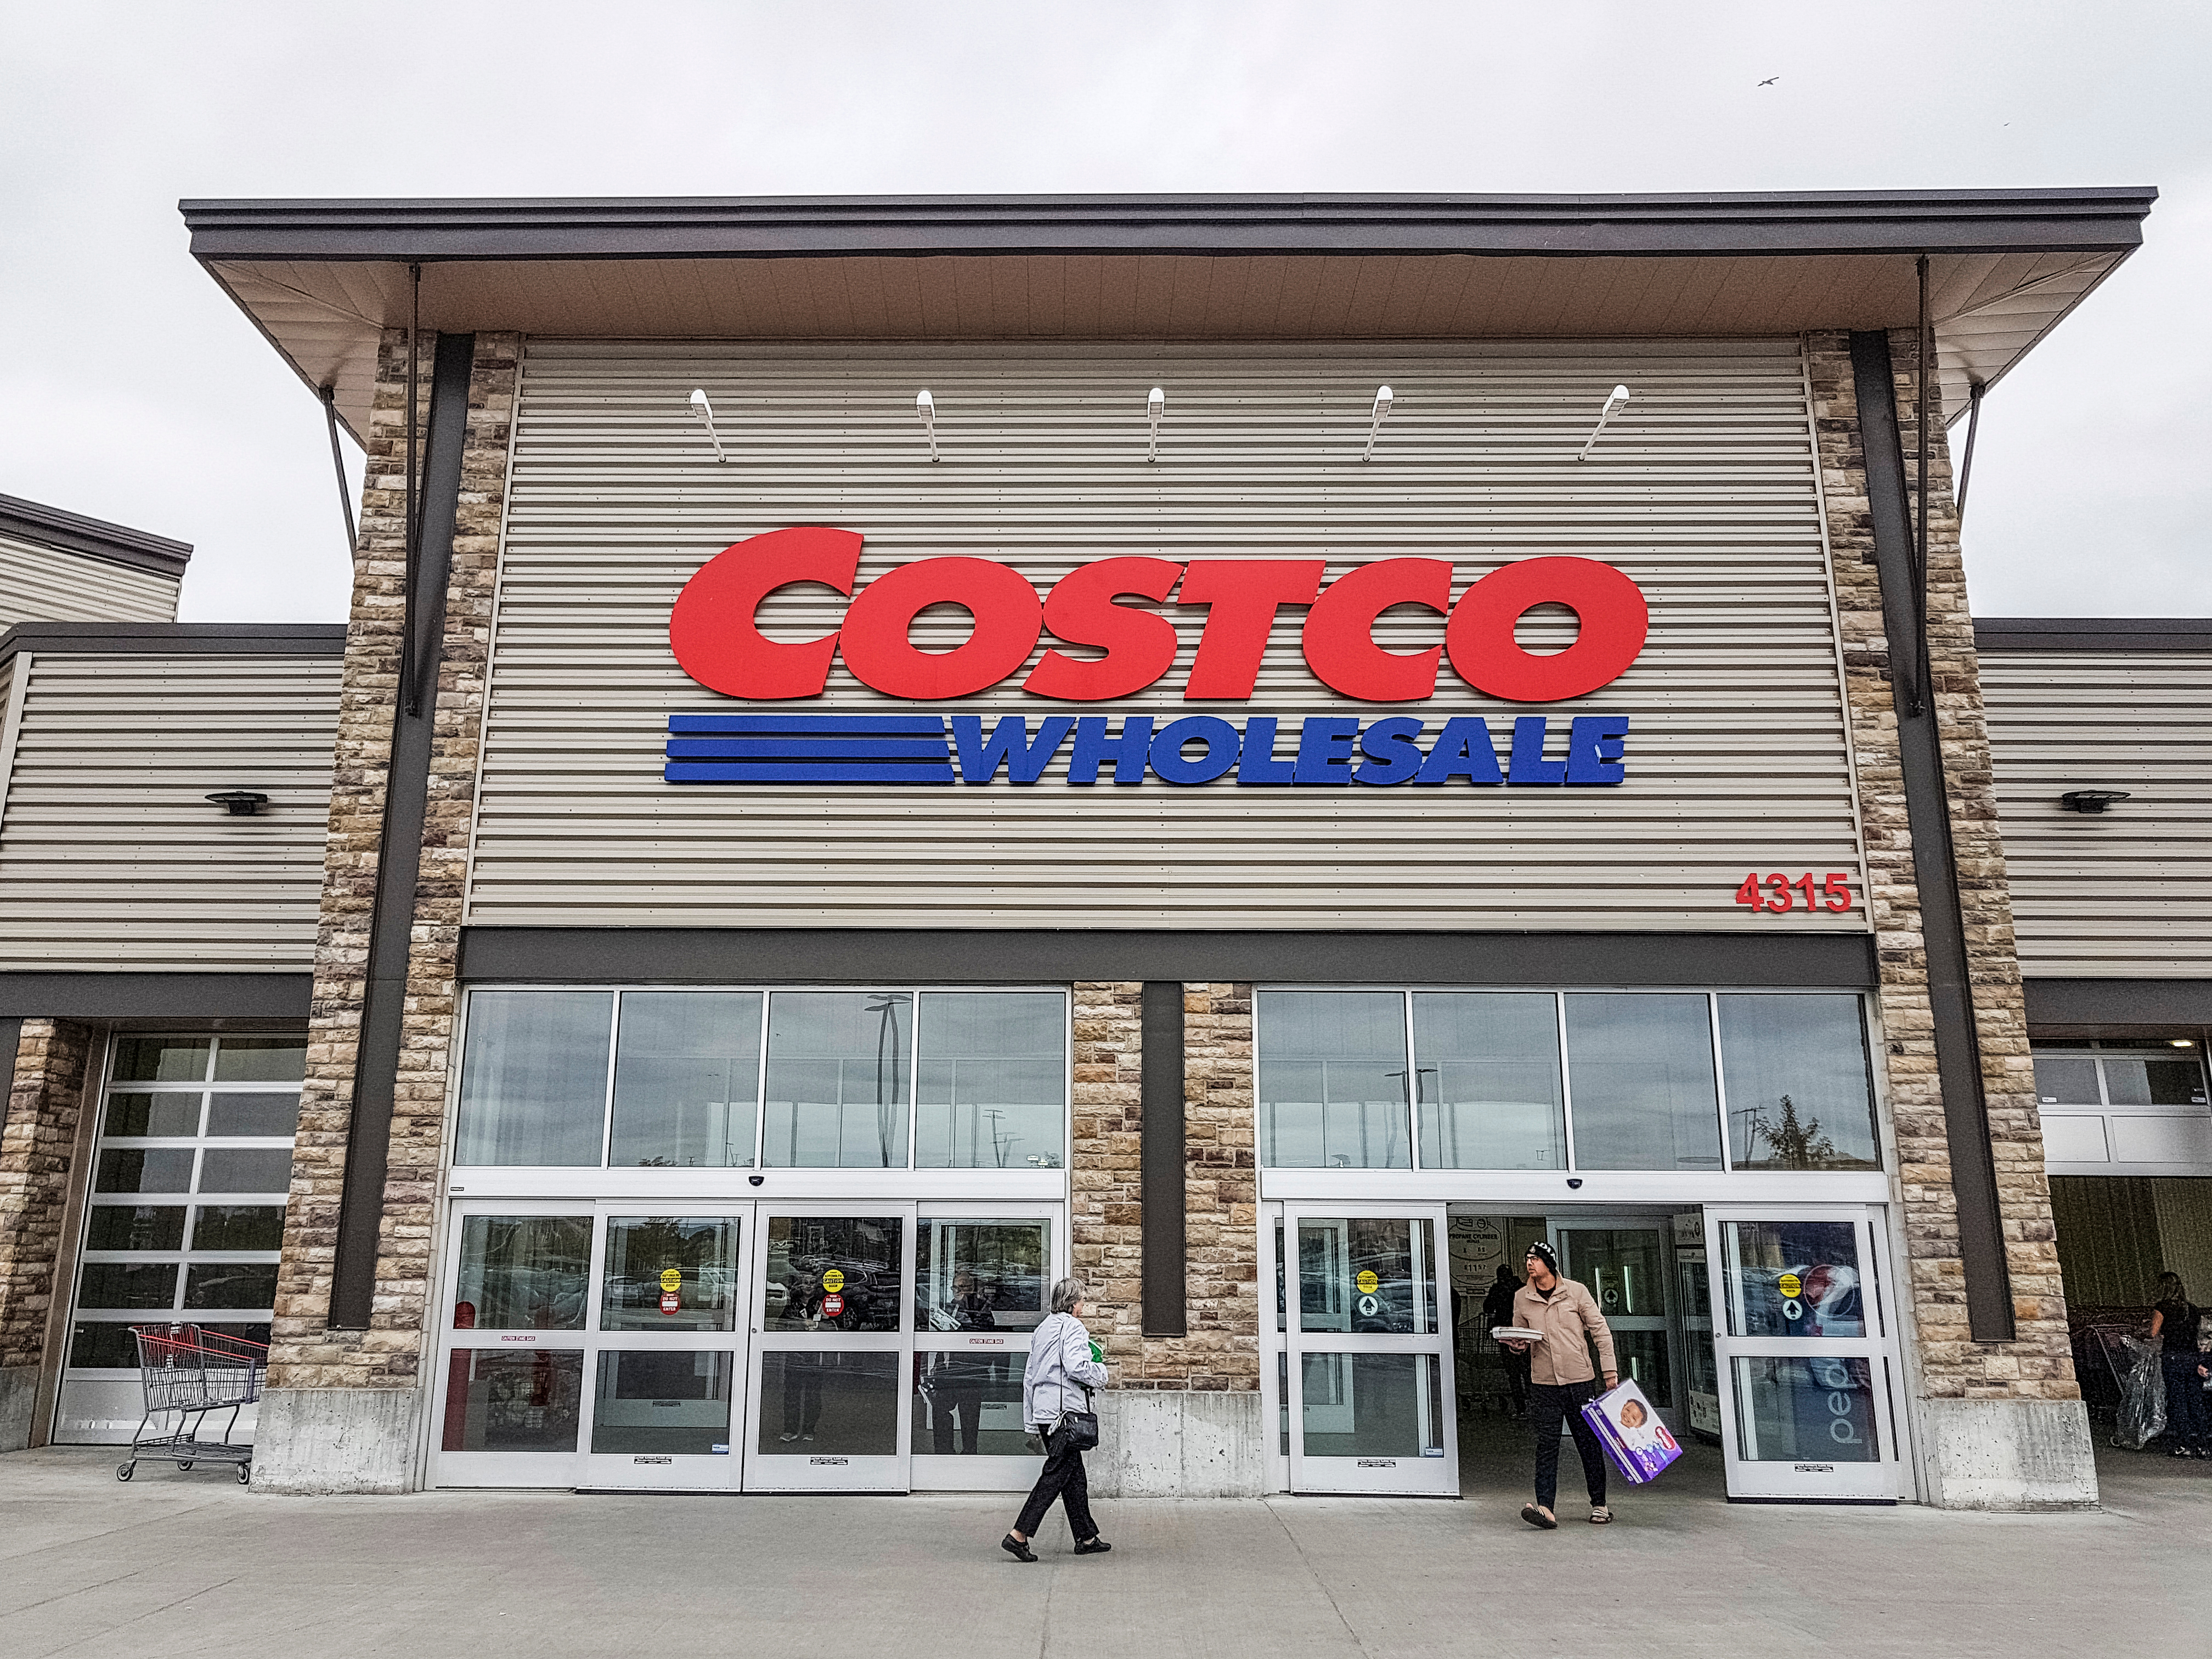 Exterior of a Costco Wholesale store